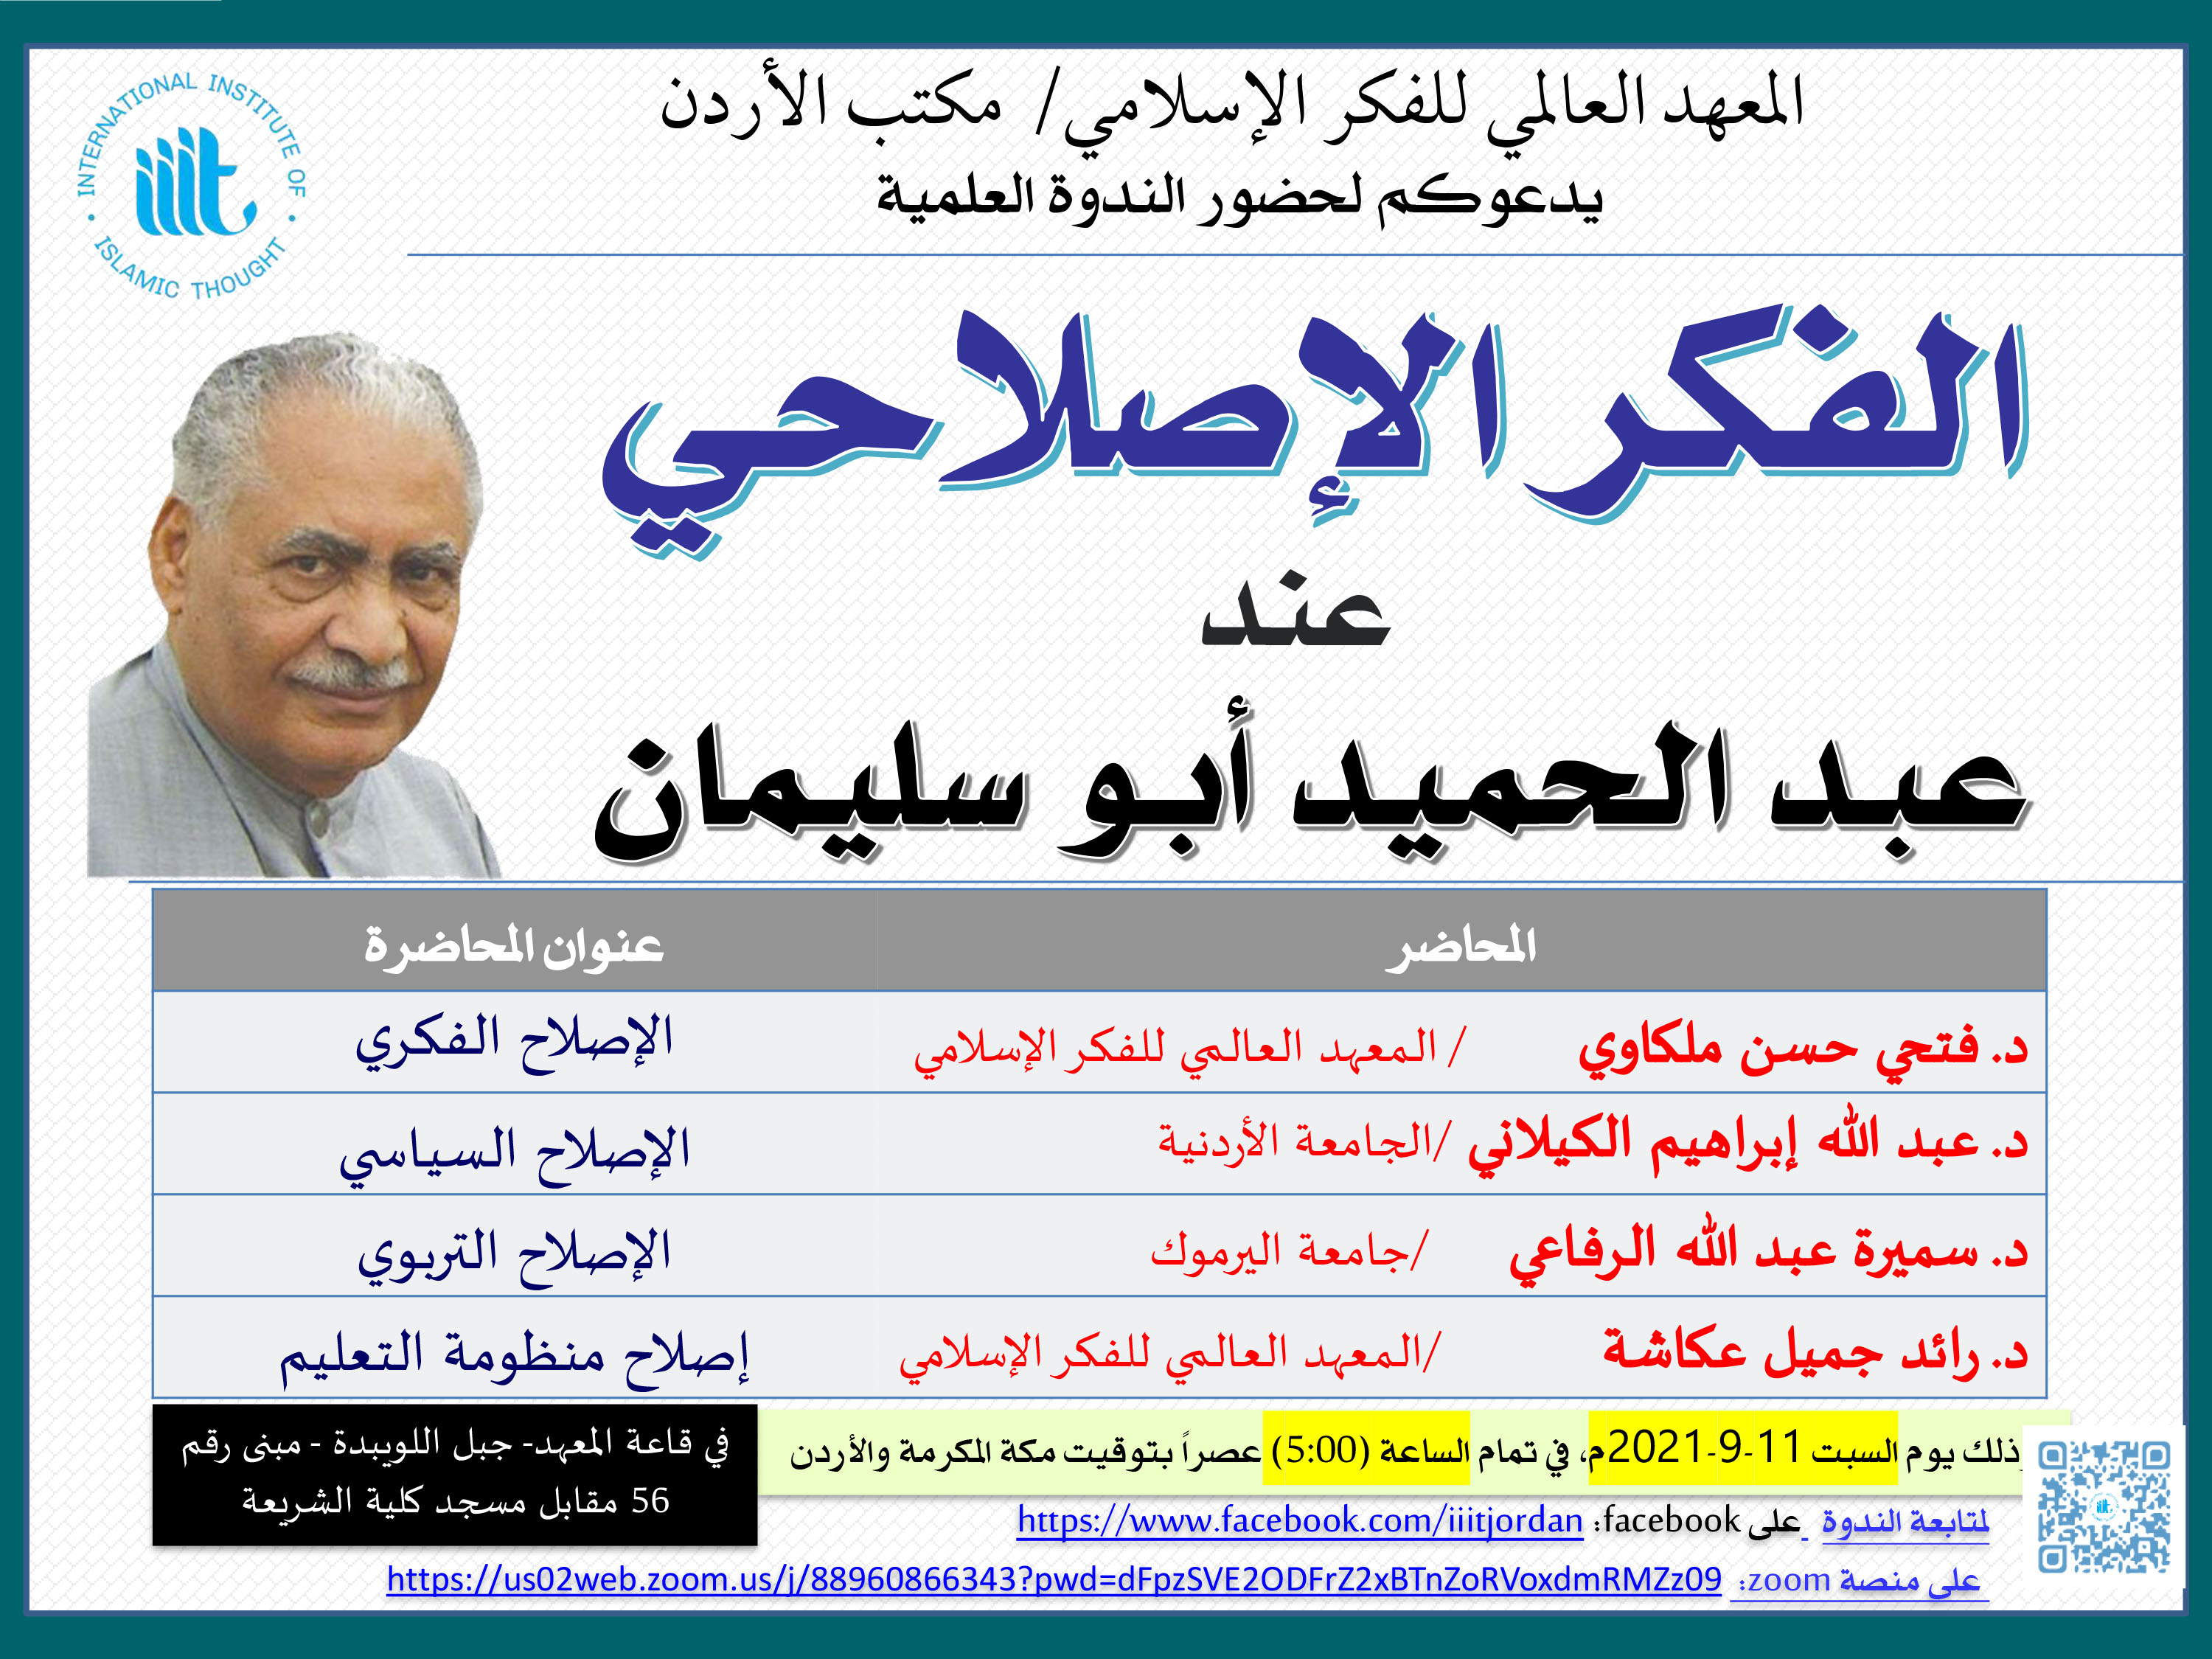 IIIT Jordan Organized an Academic Lecture About Dr. AbuSulayman on Saturday, September 11